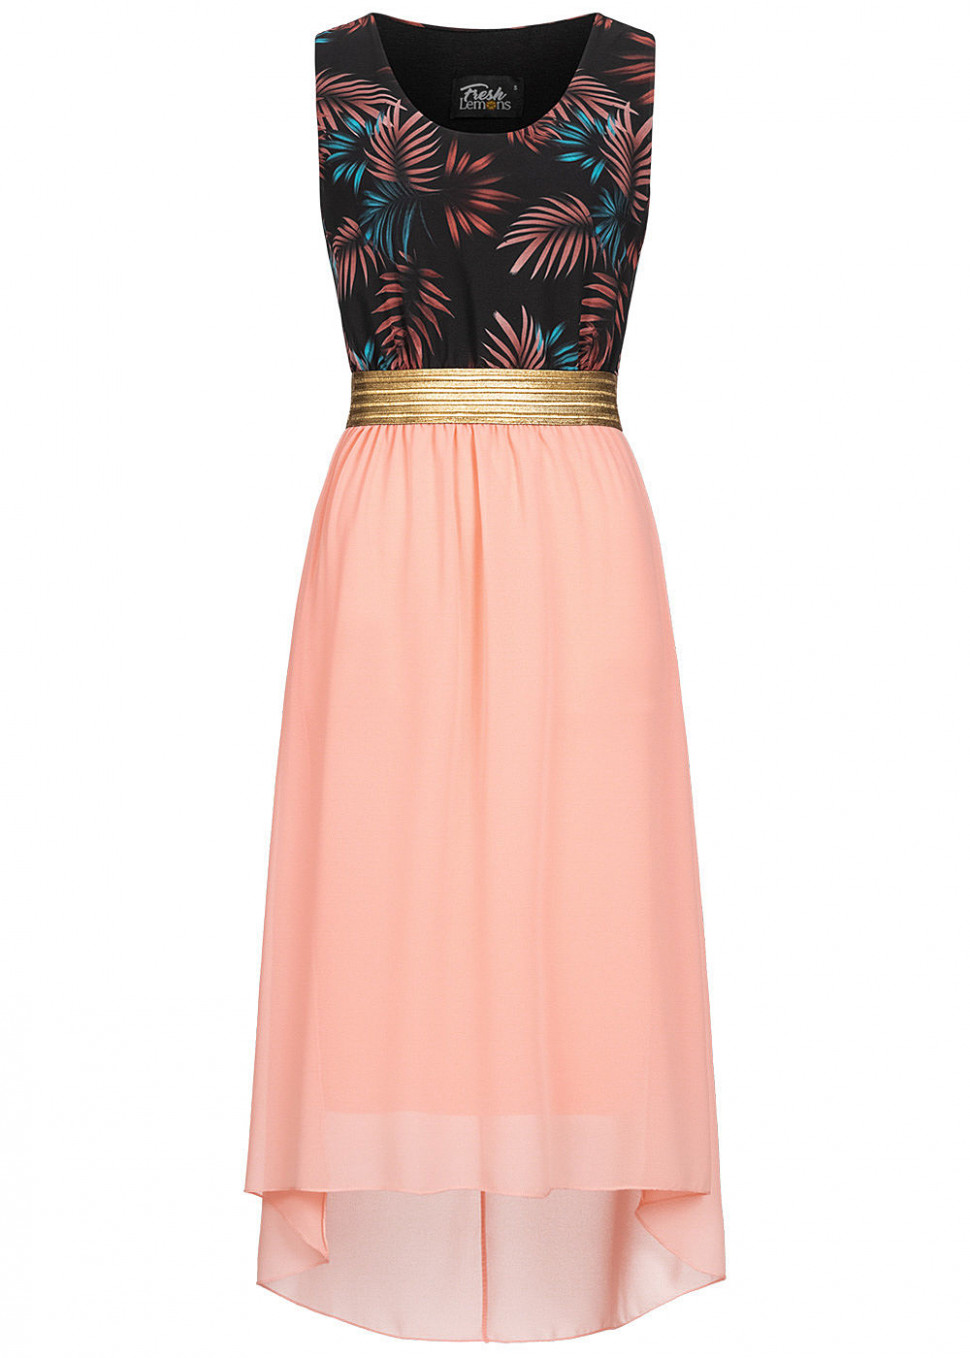 Fresh Lemons Damen 11-Tone Maxi Kleid Tropical Print schwarz rosa gold